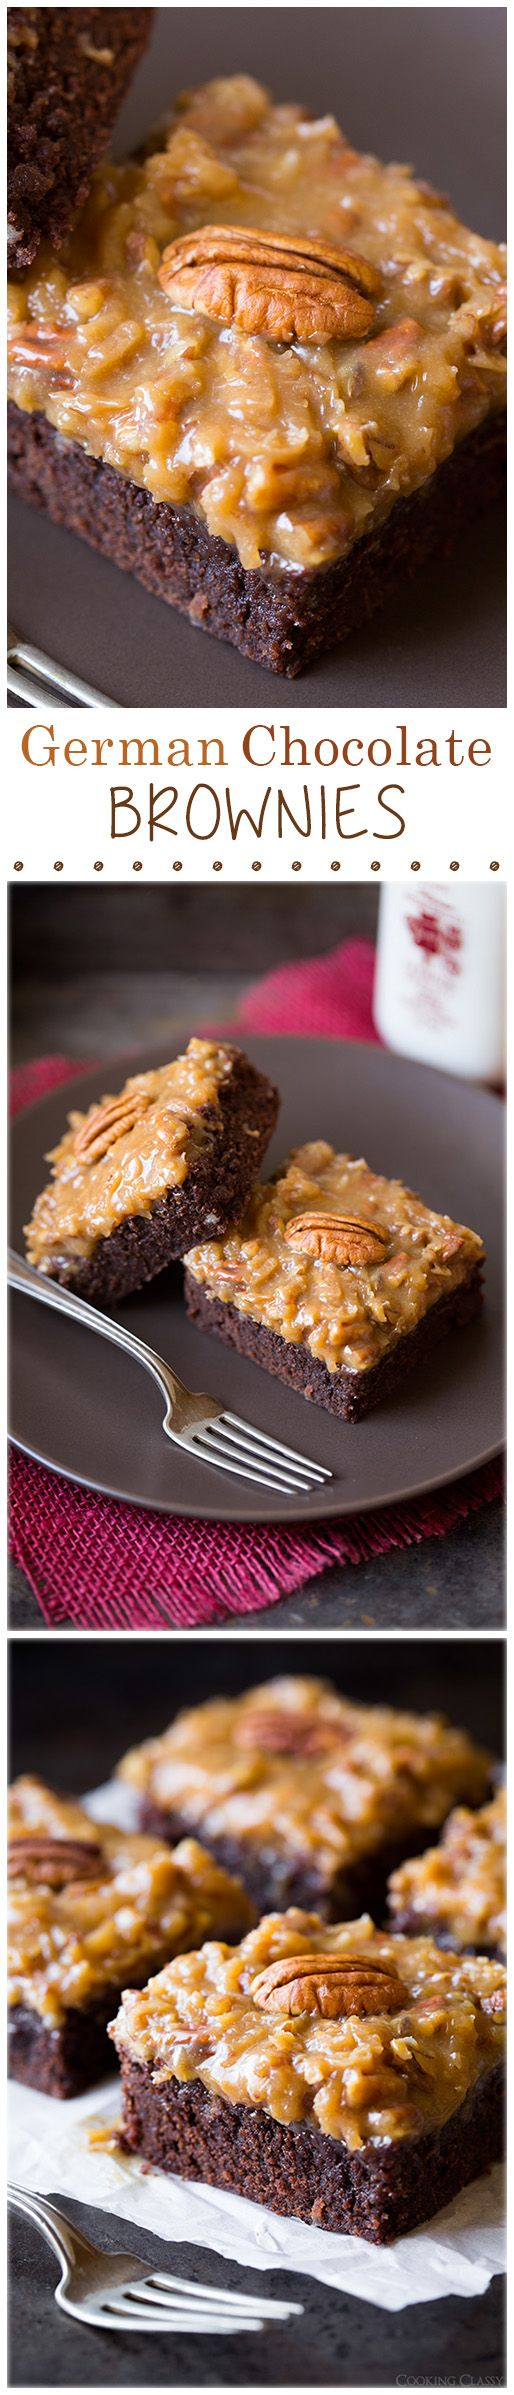 German Chocolate Brownies – they're even better than the cake, they're just totally irresistible!